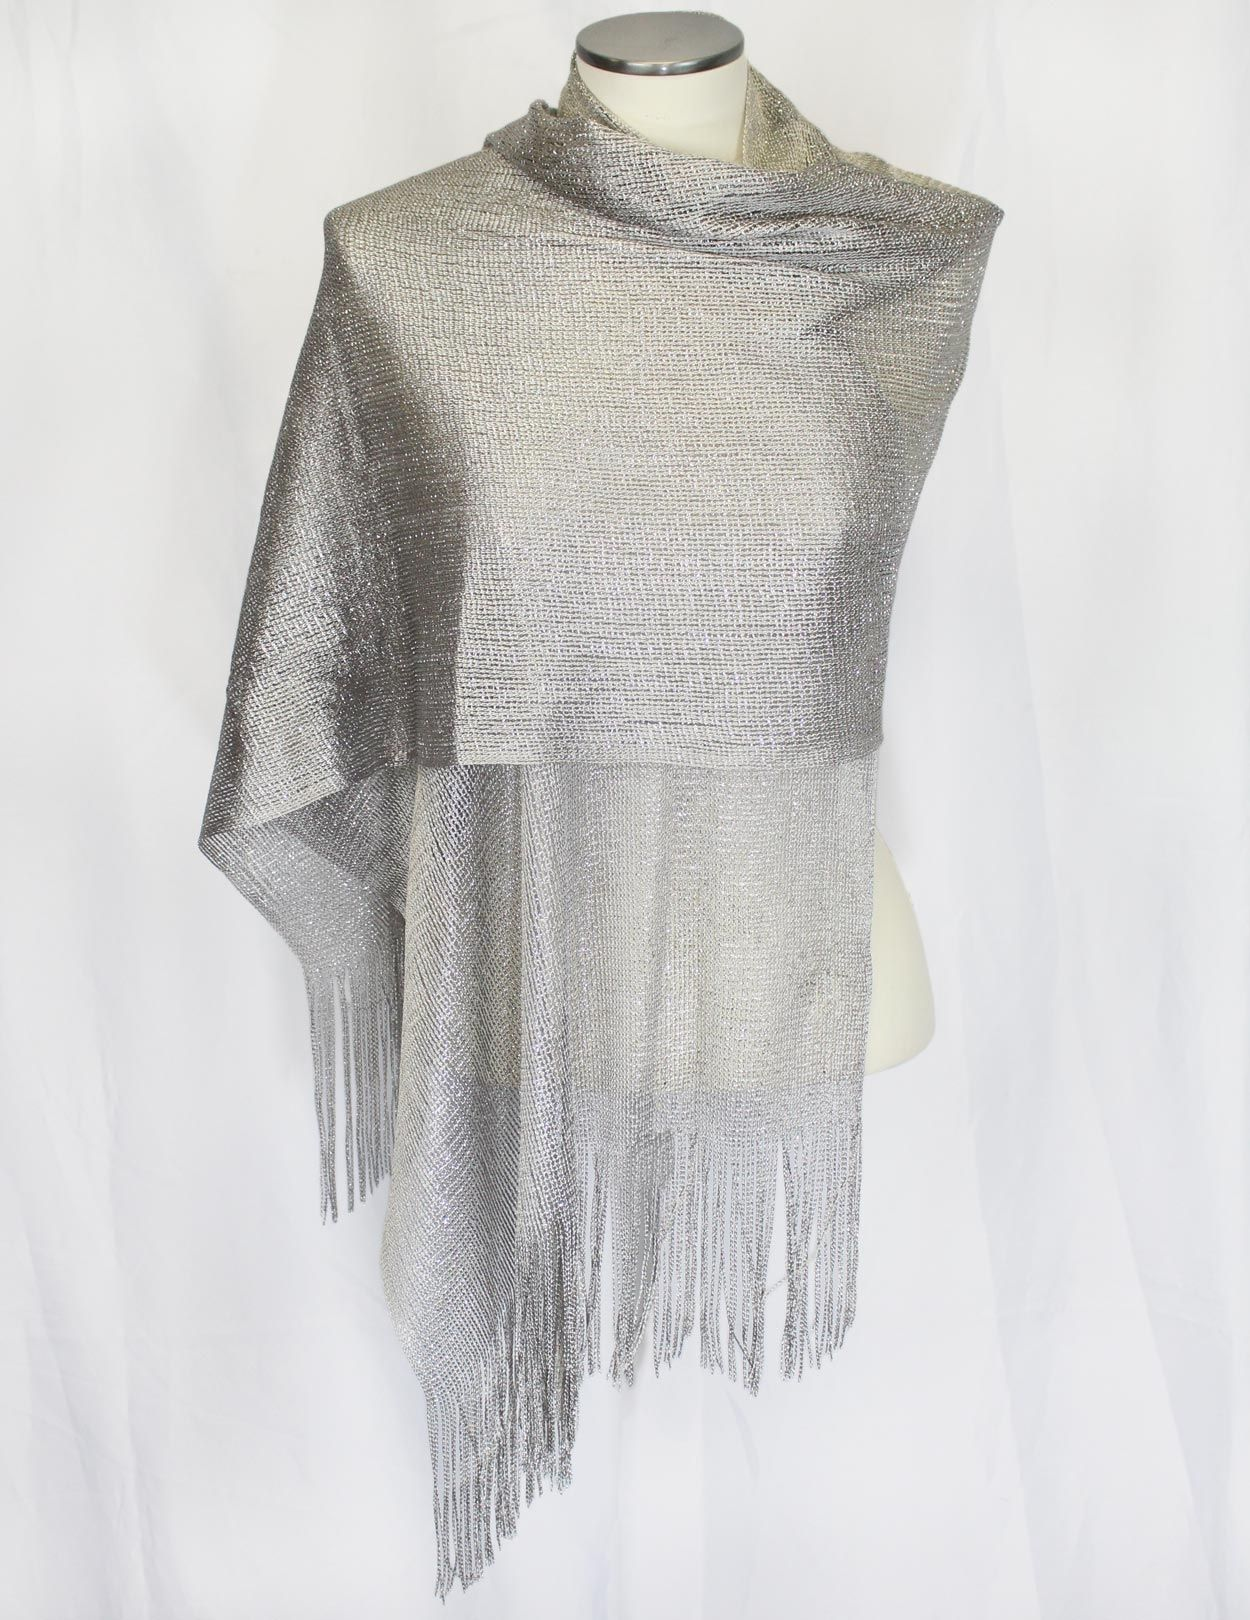 Sheer Silver Fishnet and Fringed Evening Wrap Shawl ...